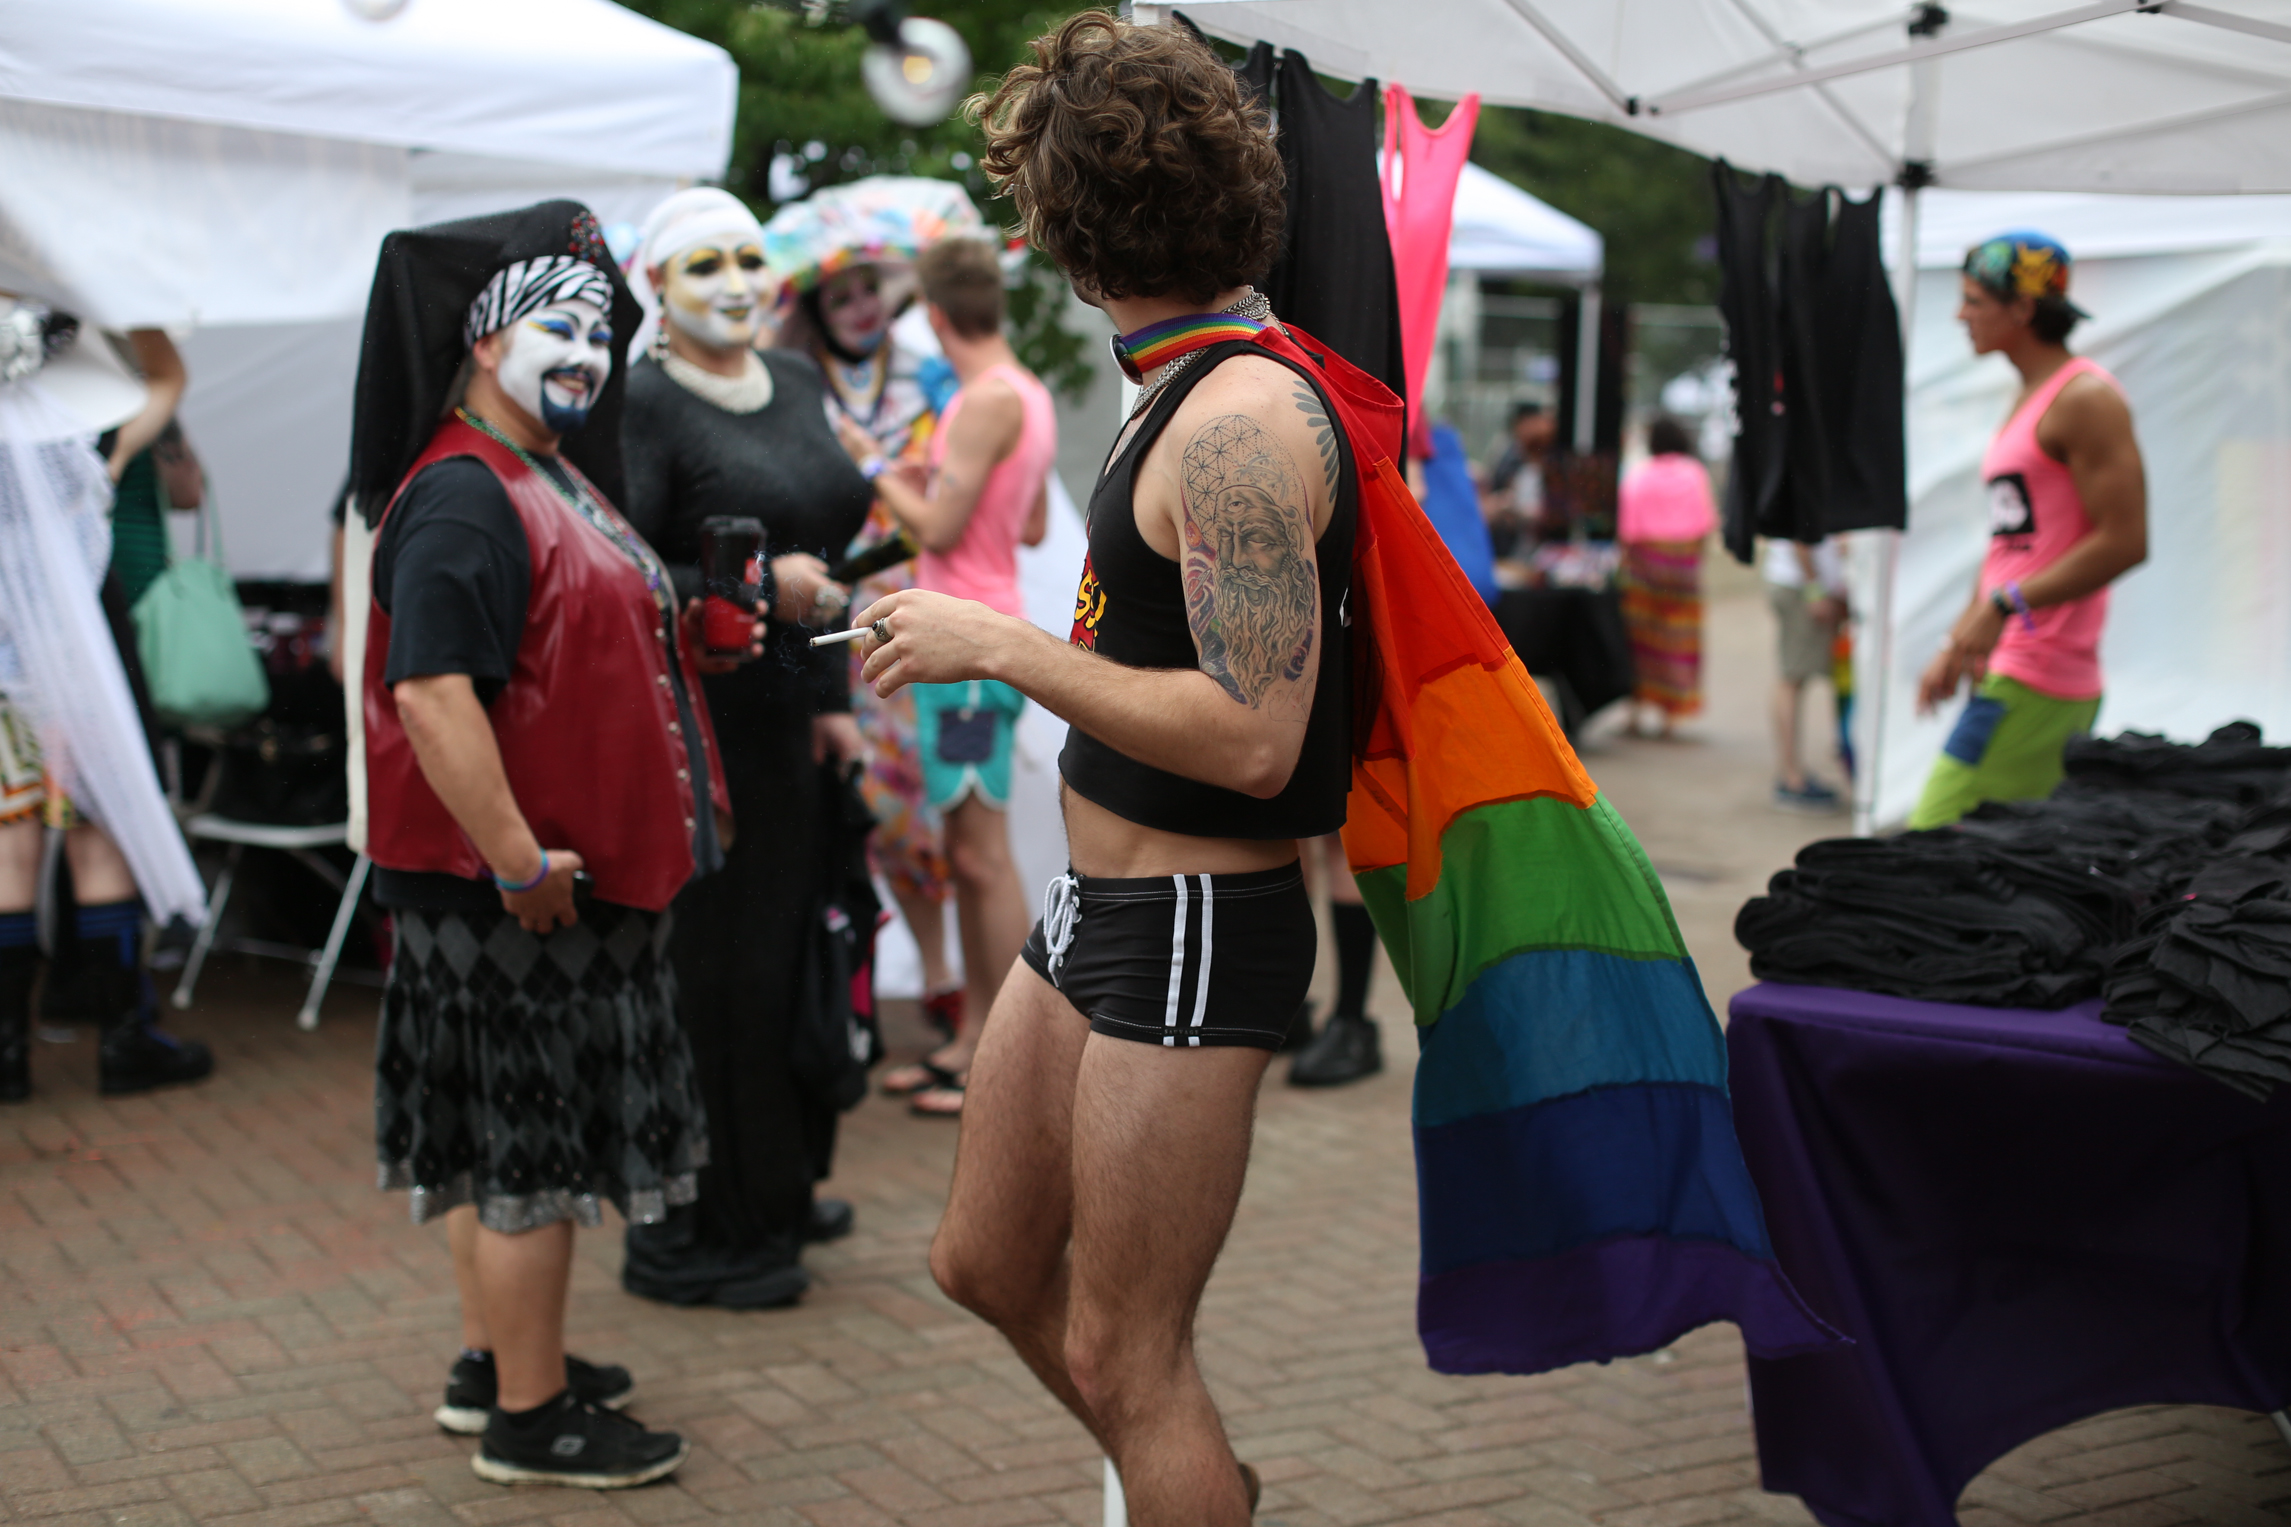 PRIDE W-FEVA 2015 EDITED CRYSTAL LUDWICK PHOTO (18 of 83).jpg